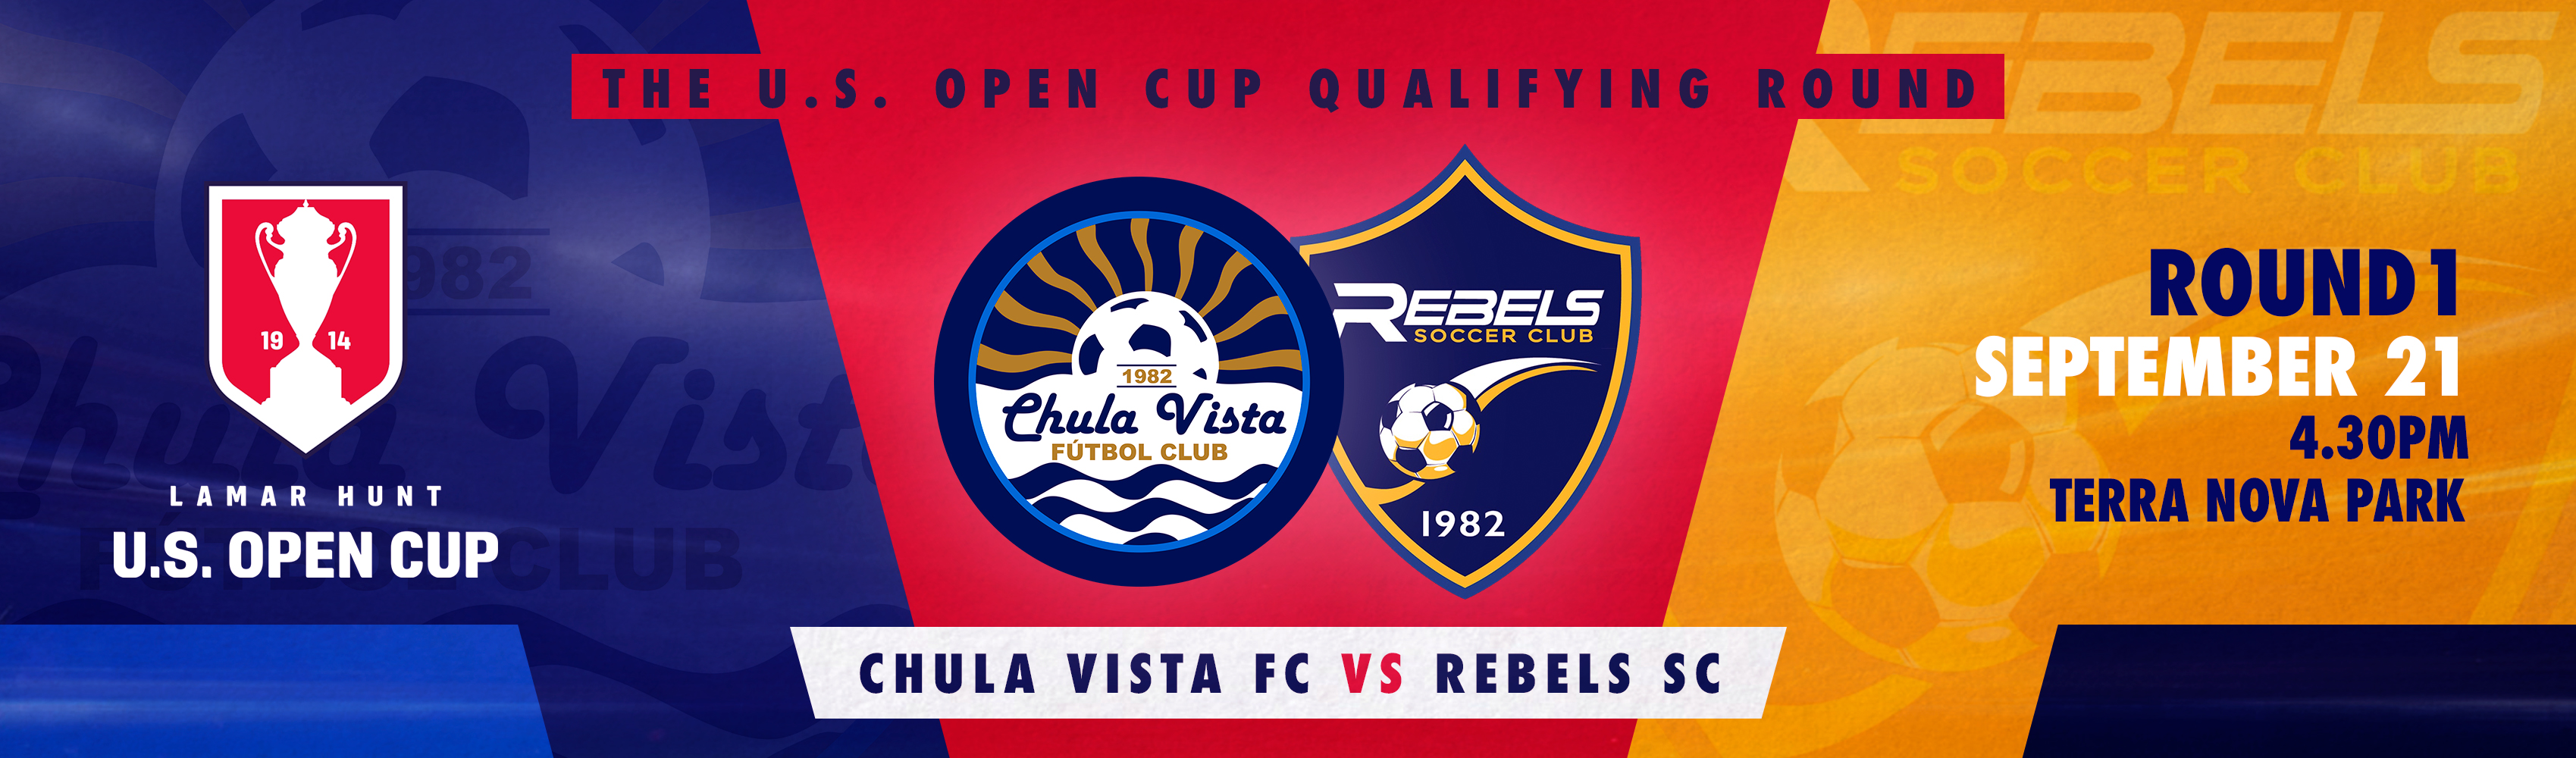 Chula Vista FC Set for First Round of the Open Cup Qualifiers